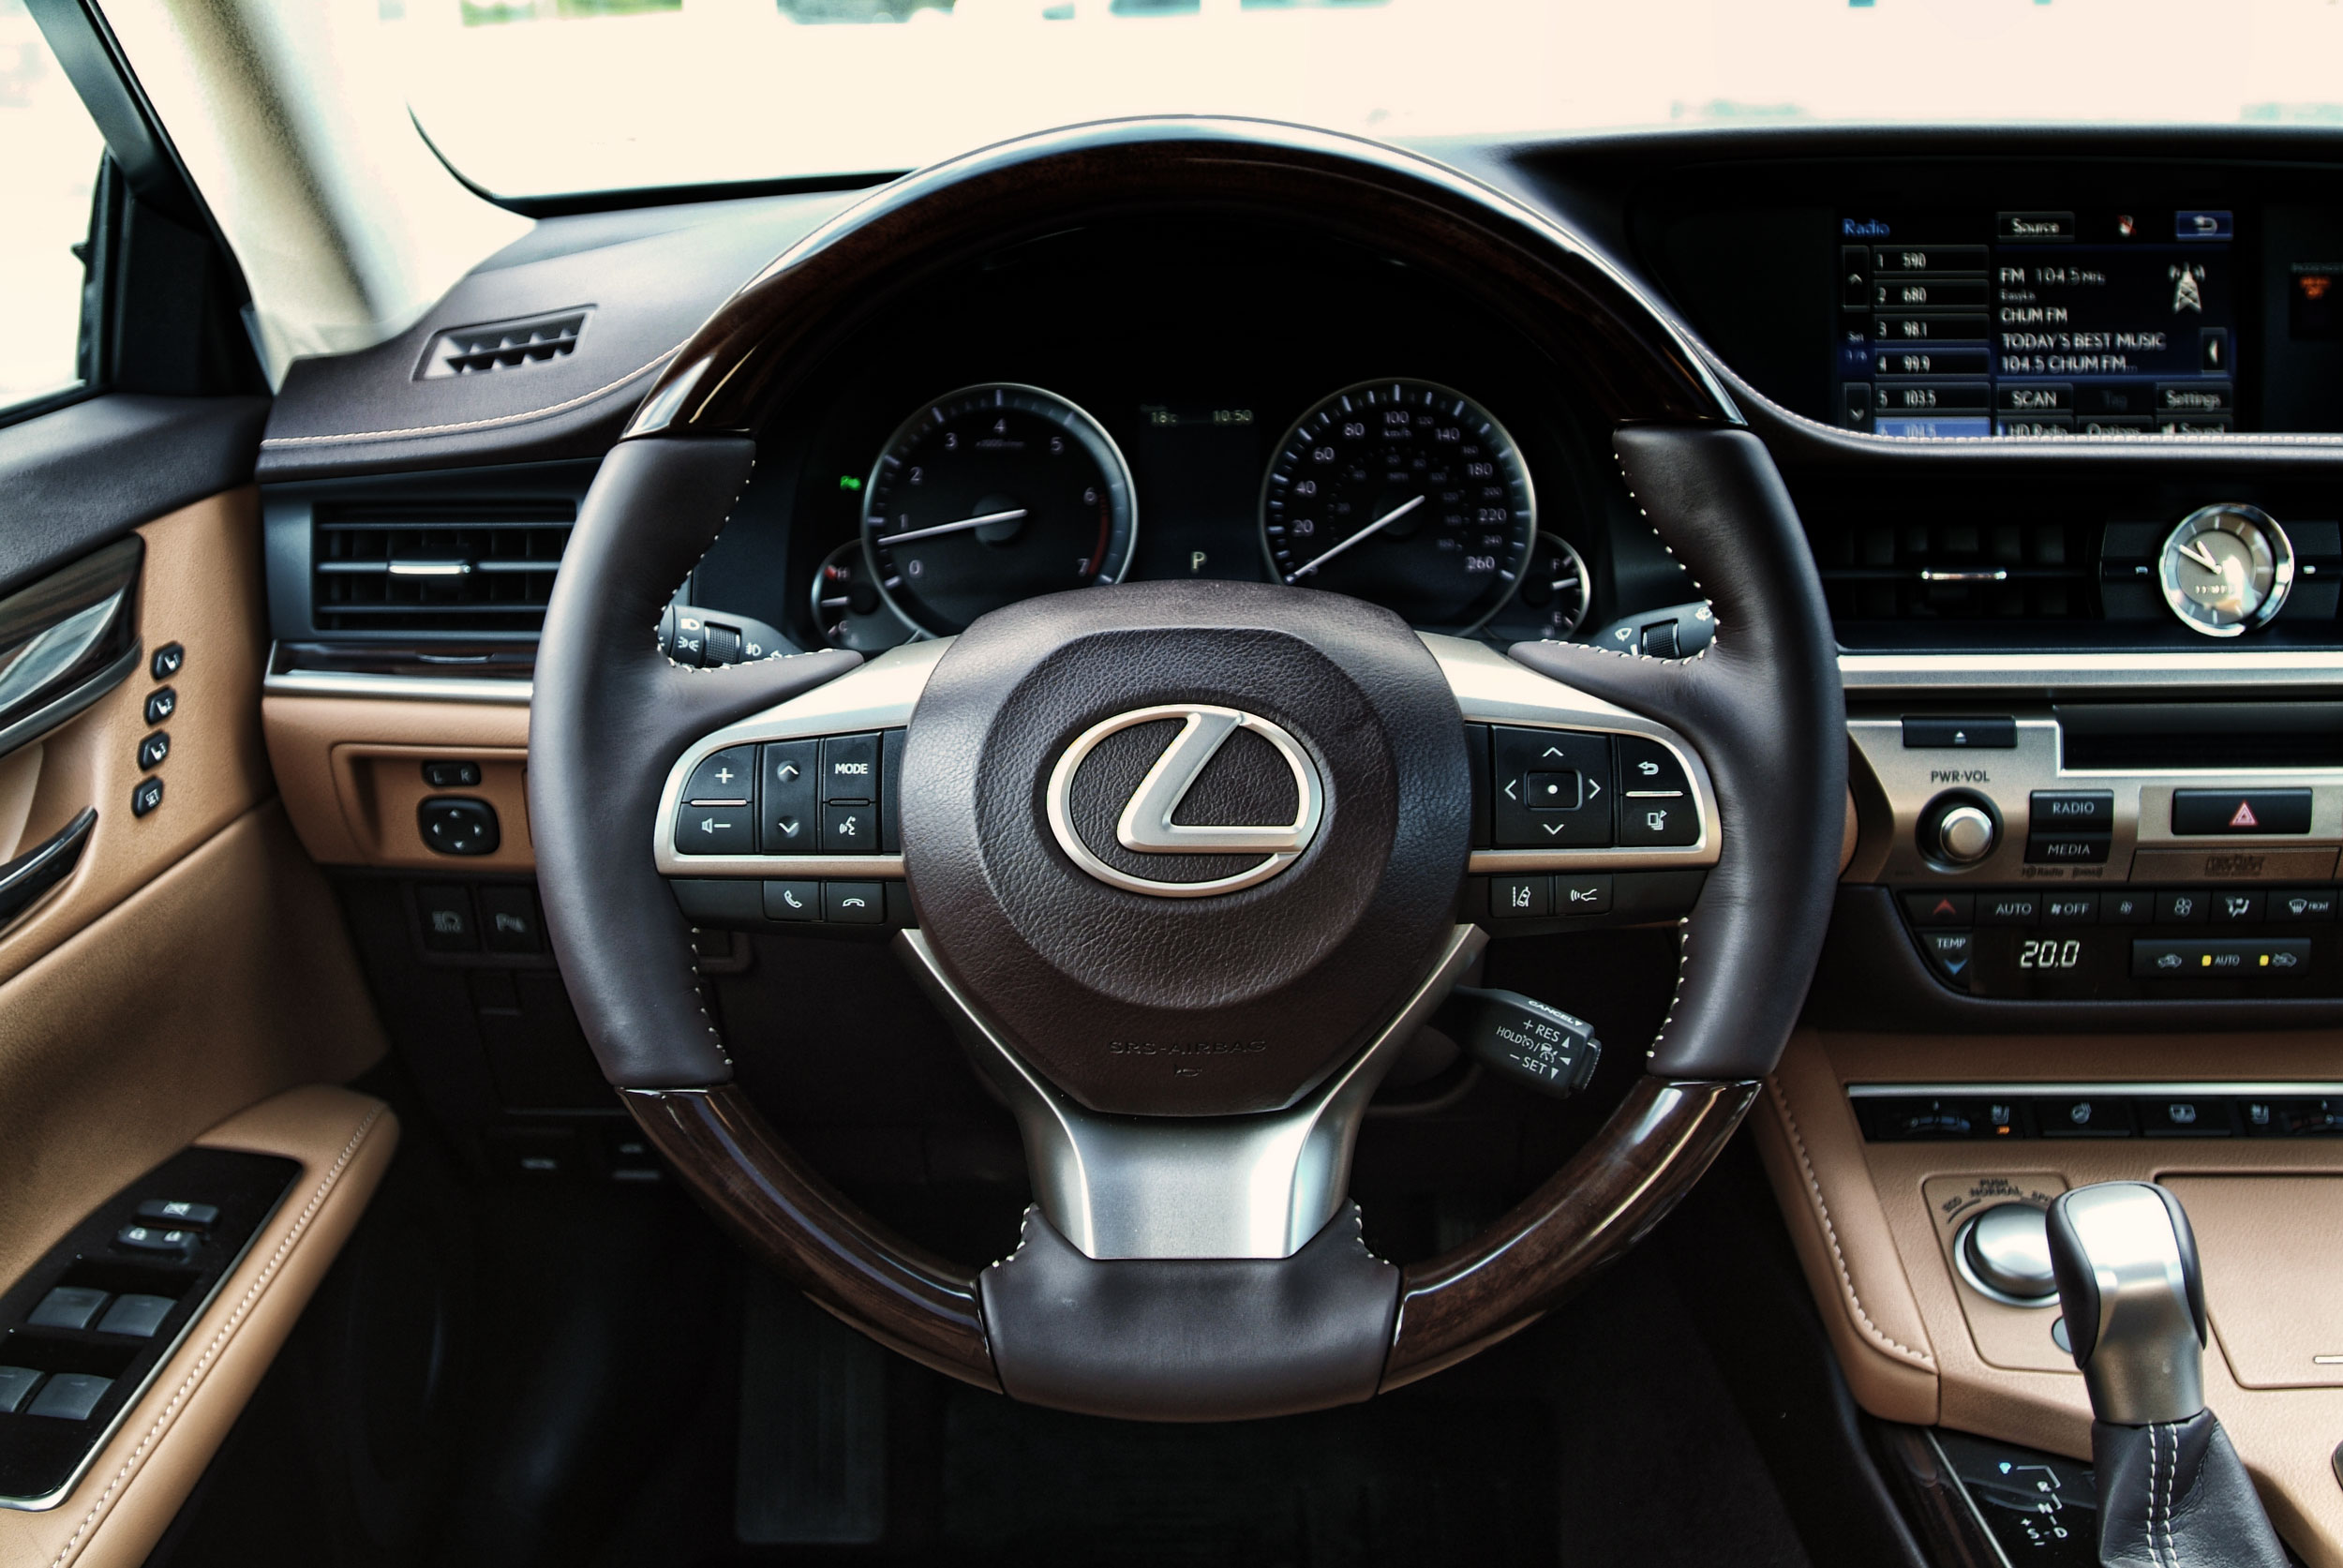 The steering wheel of the 2016 Lexus ES